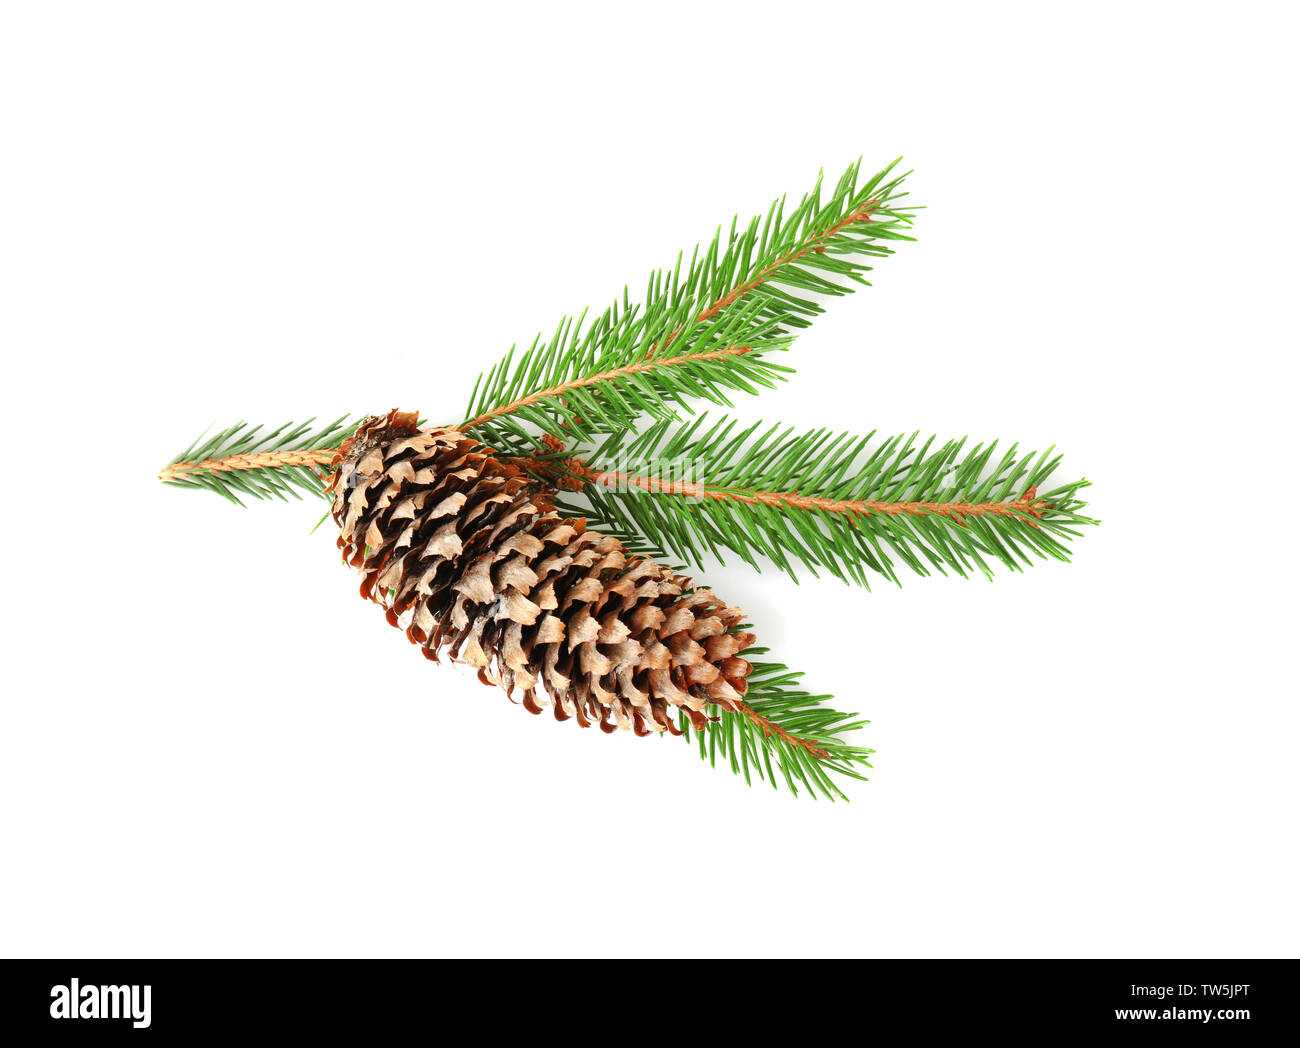 Branch of fir tree and cone on white background Stock Photo